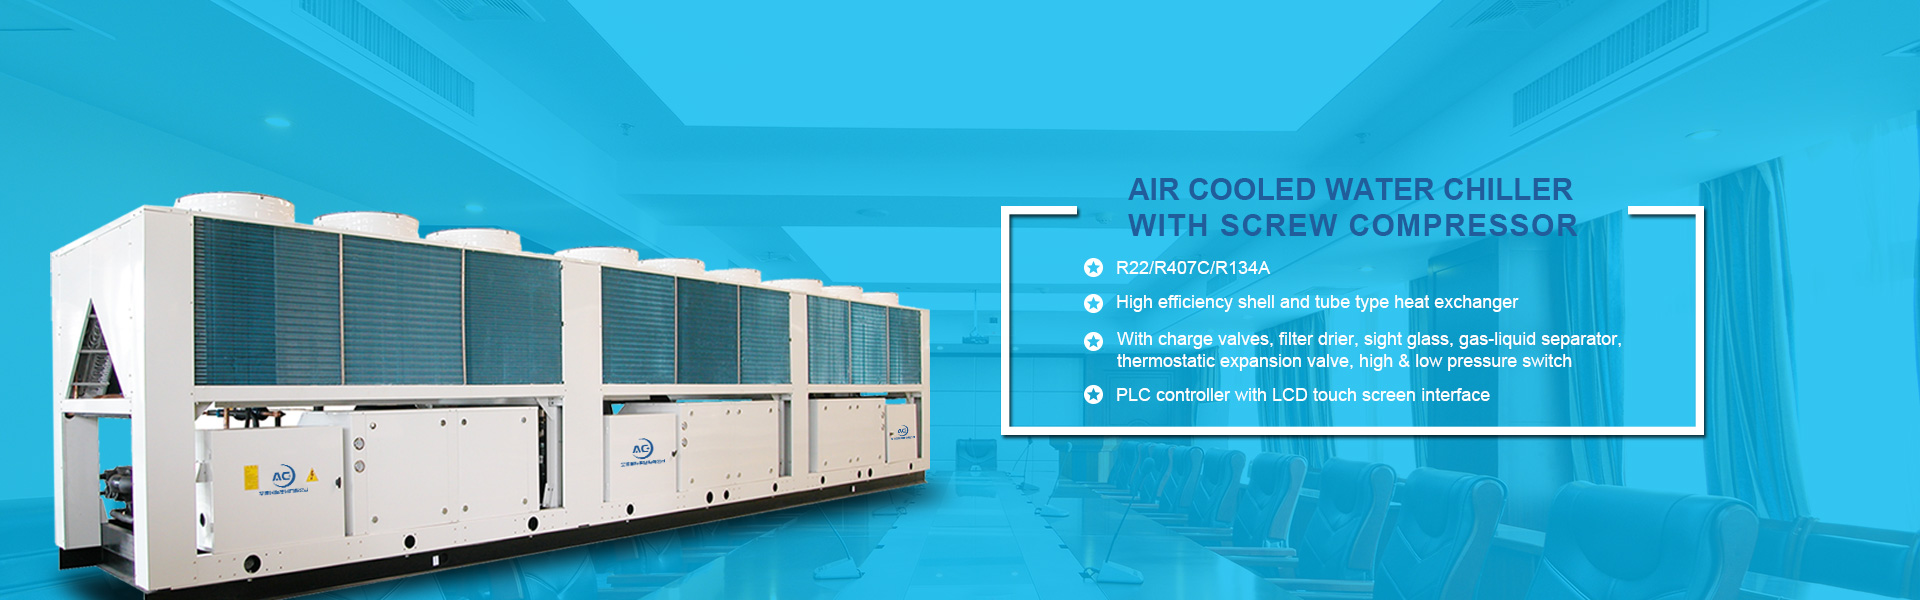 AC+——a professional air cooled water chiller manufacturer